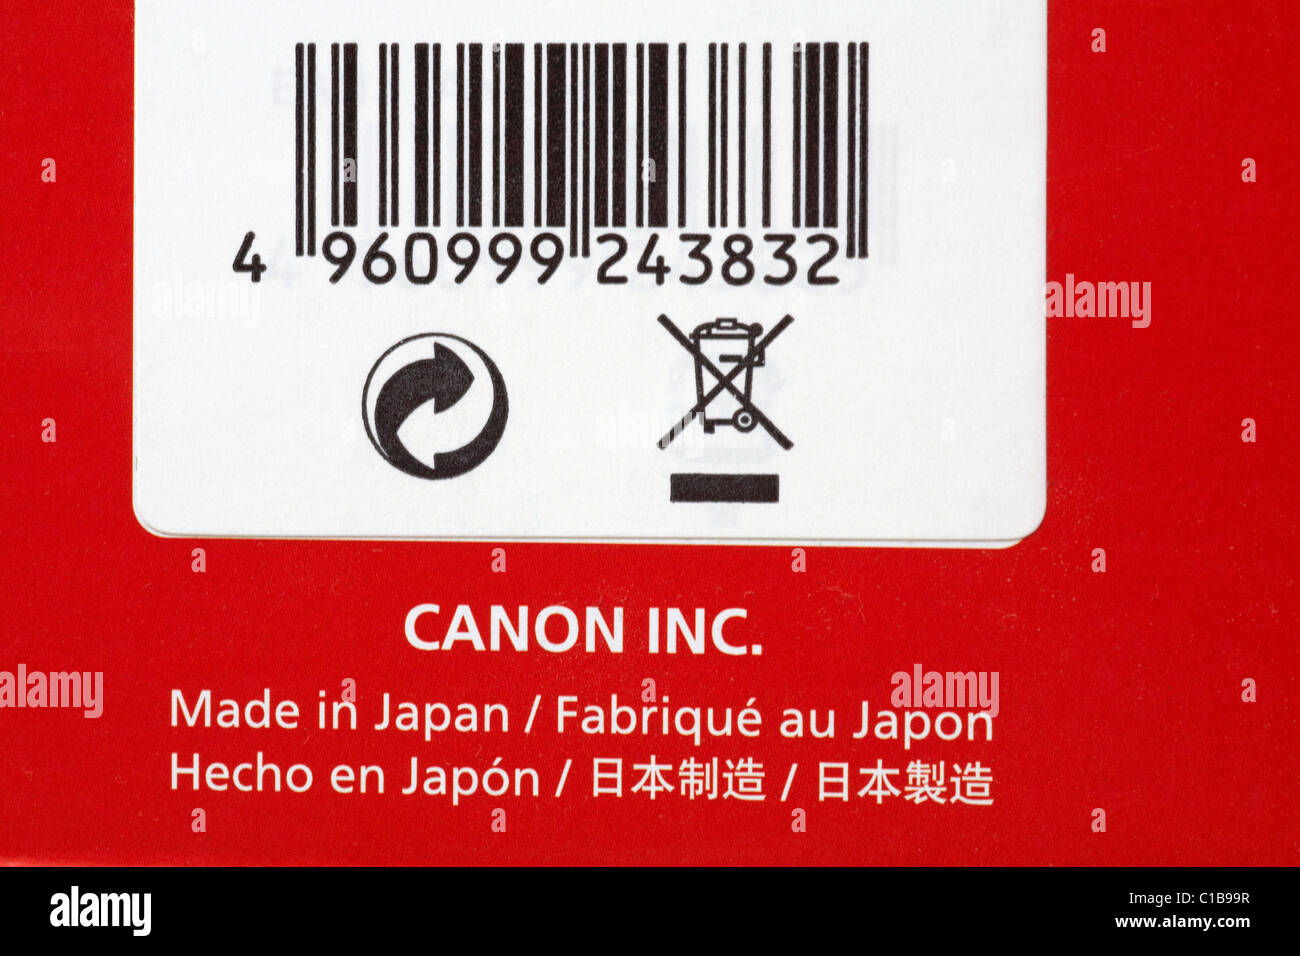 Made in Japan - on box of Canon photographic equipment Speedlite Flash gun - Stock Image